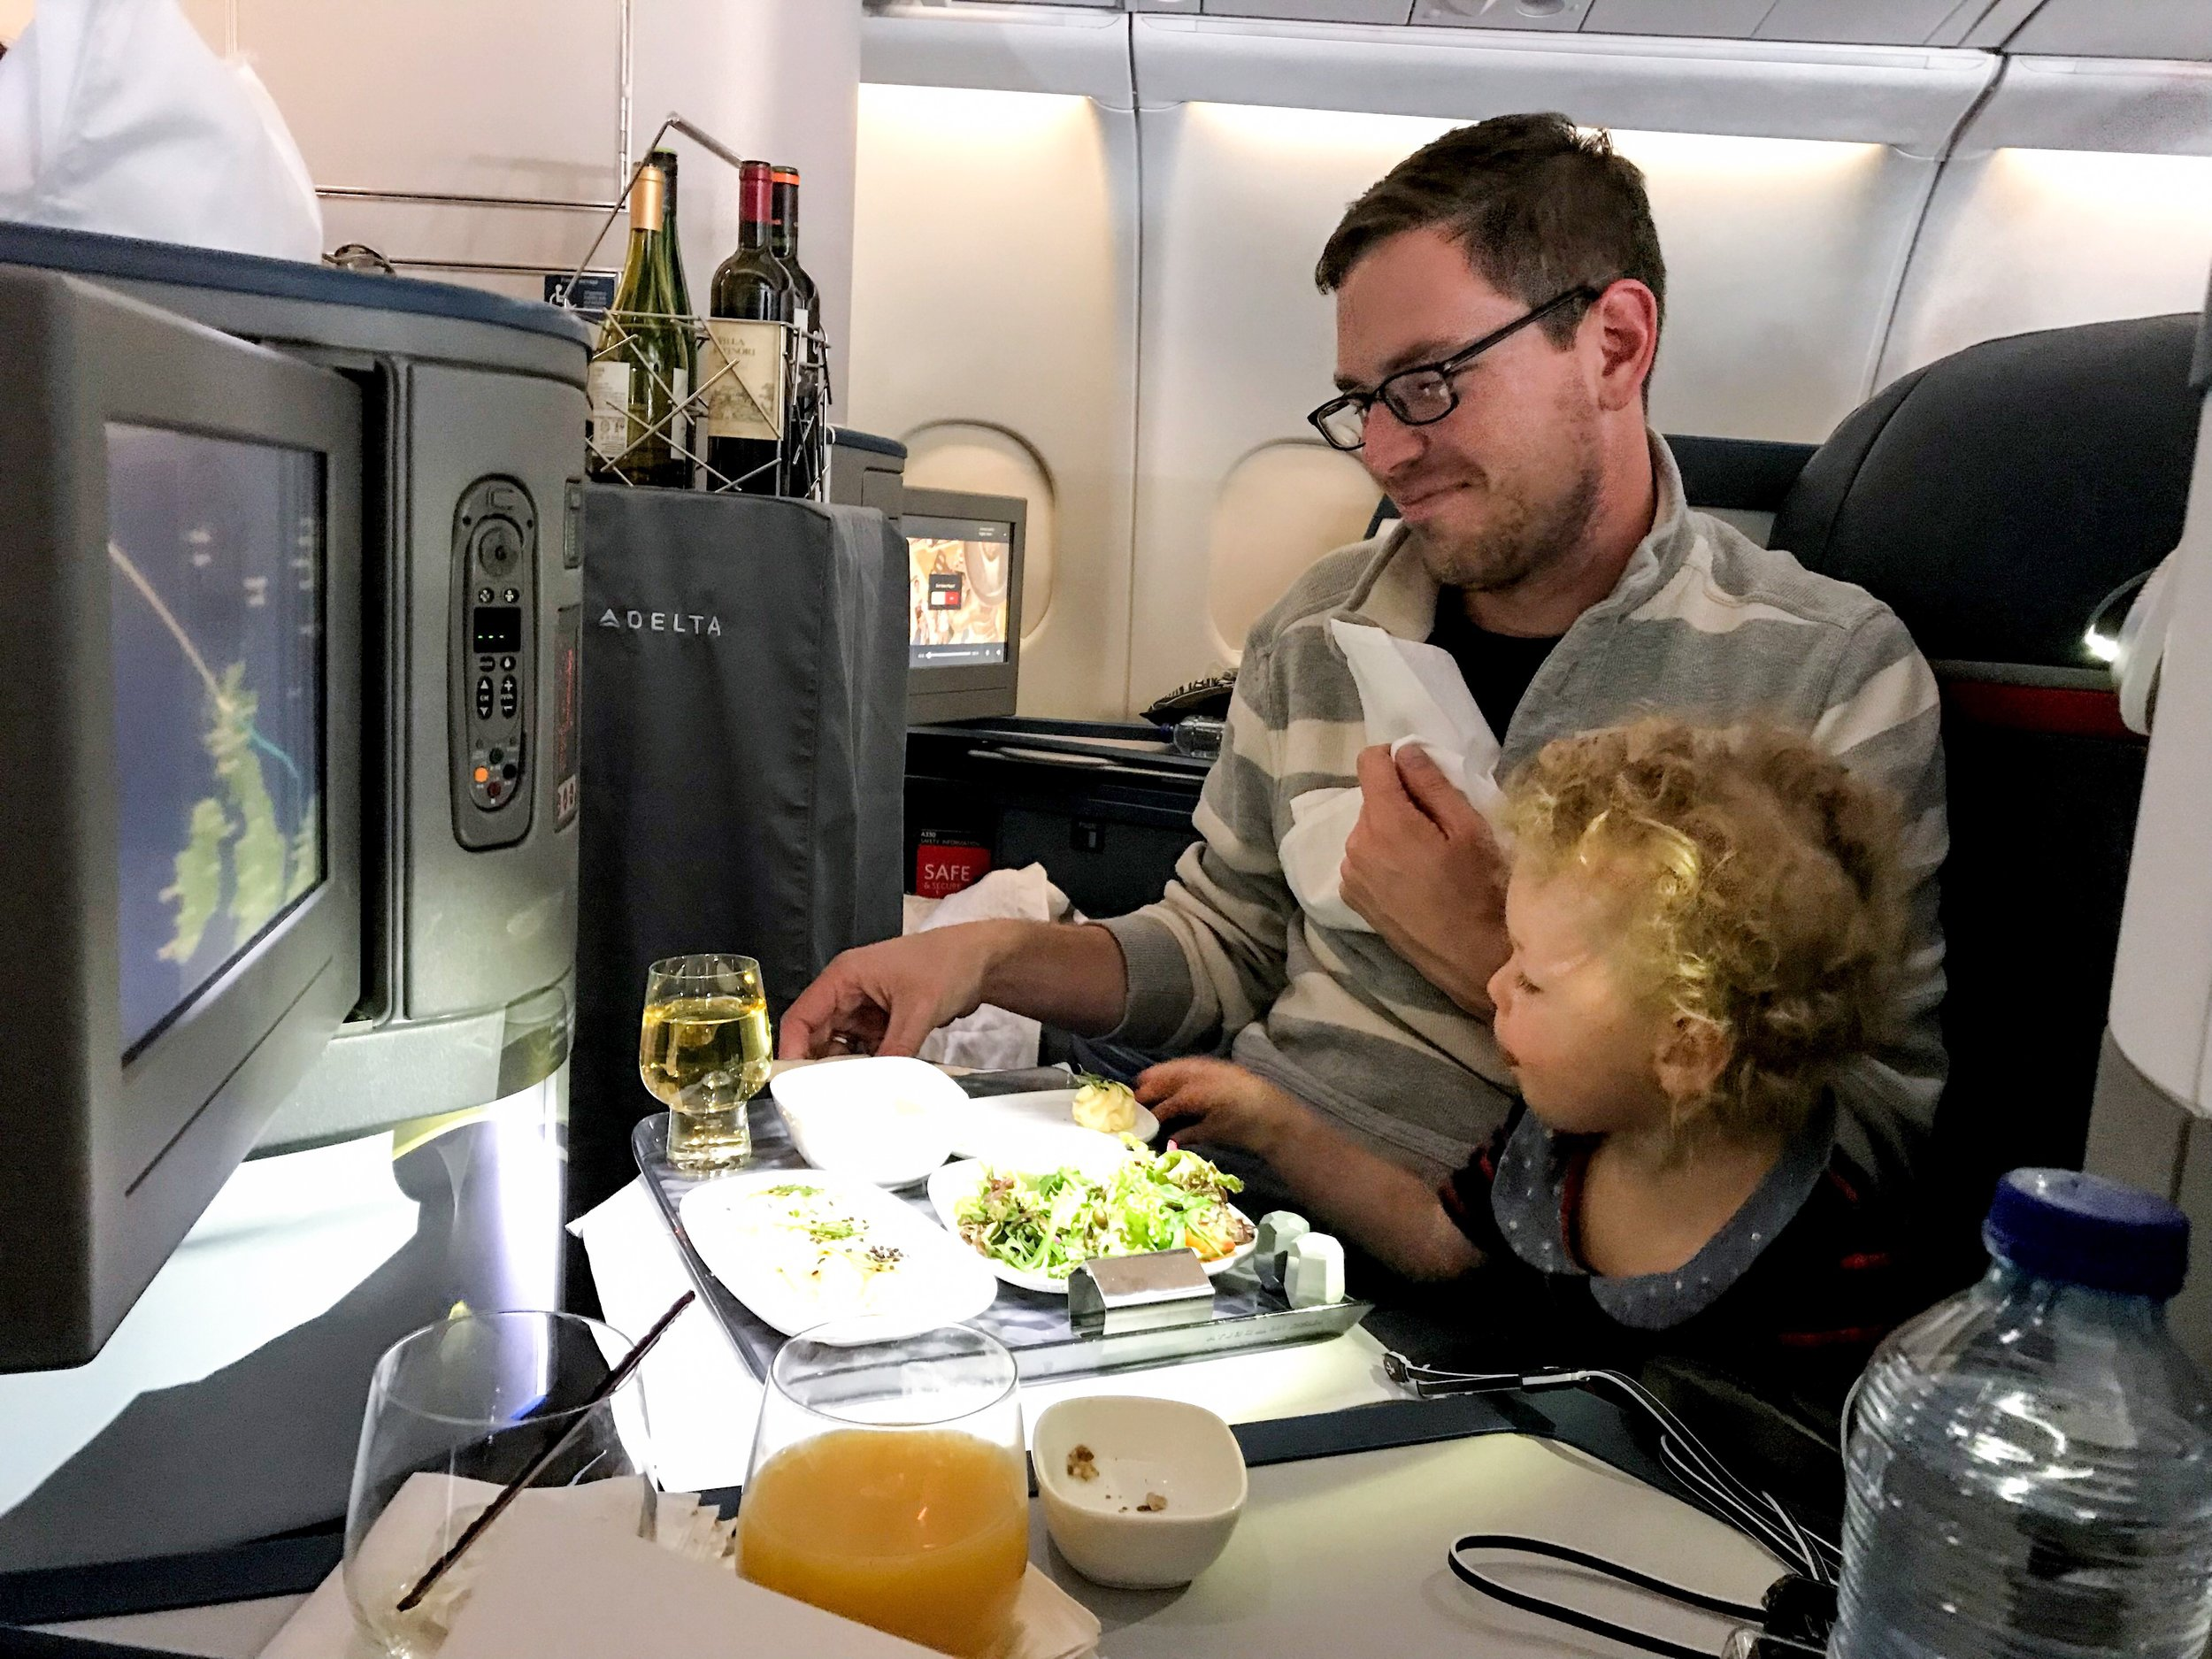 Drinks were initially served from a beverage cart during the meal. But after the meal was done, flight attendants walked around the cabin with bottles of wine.